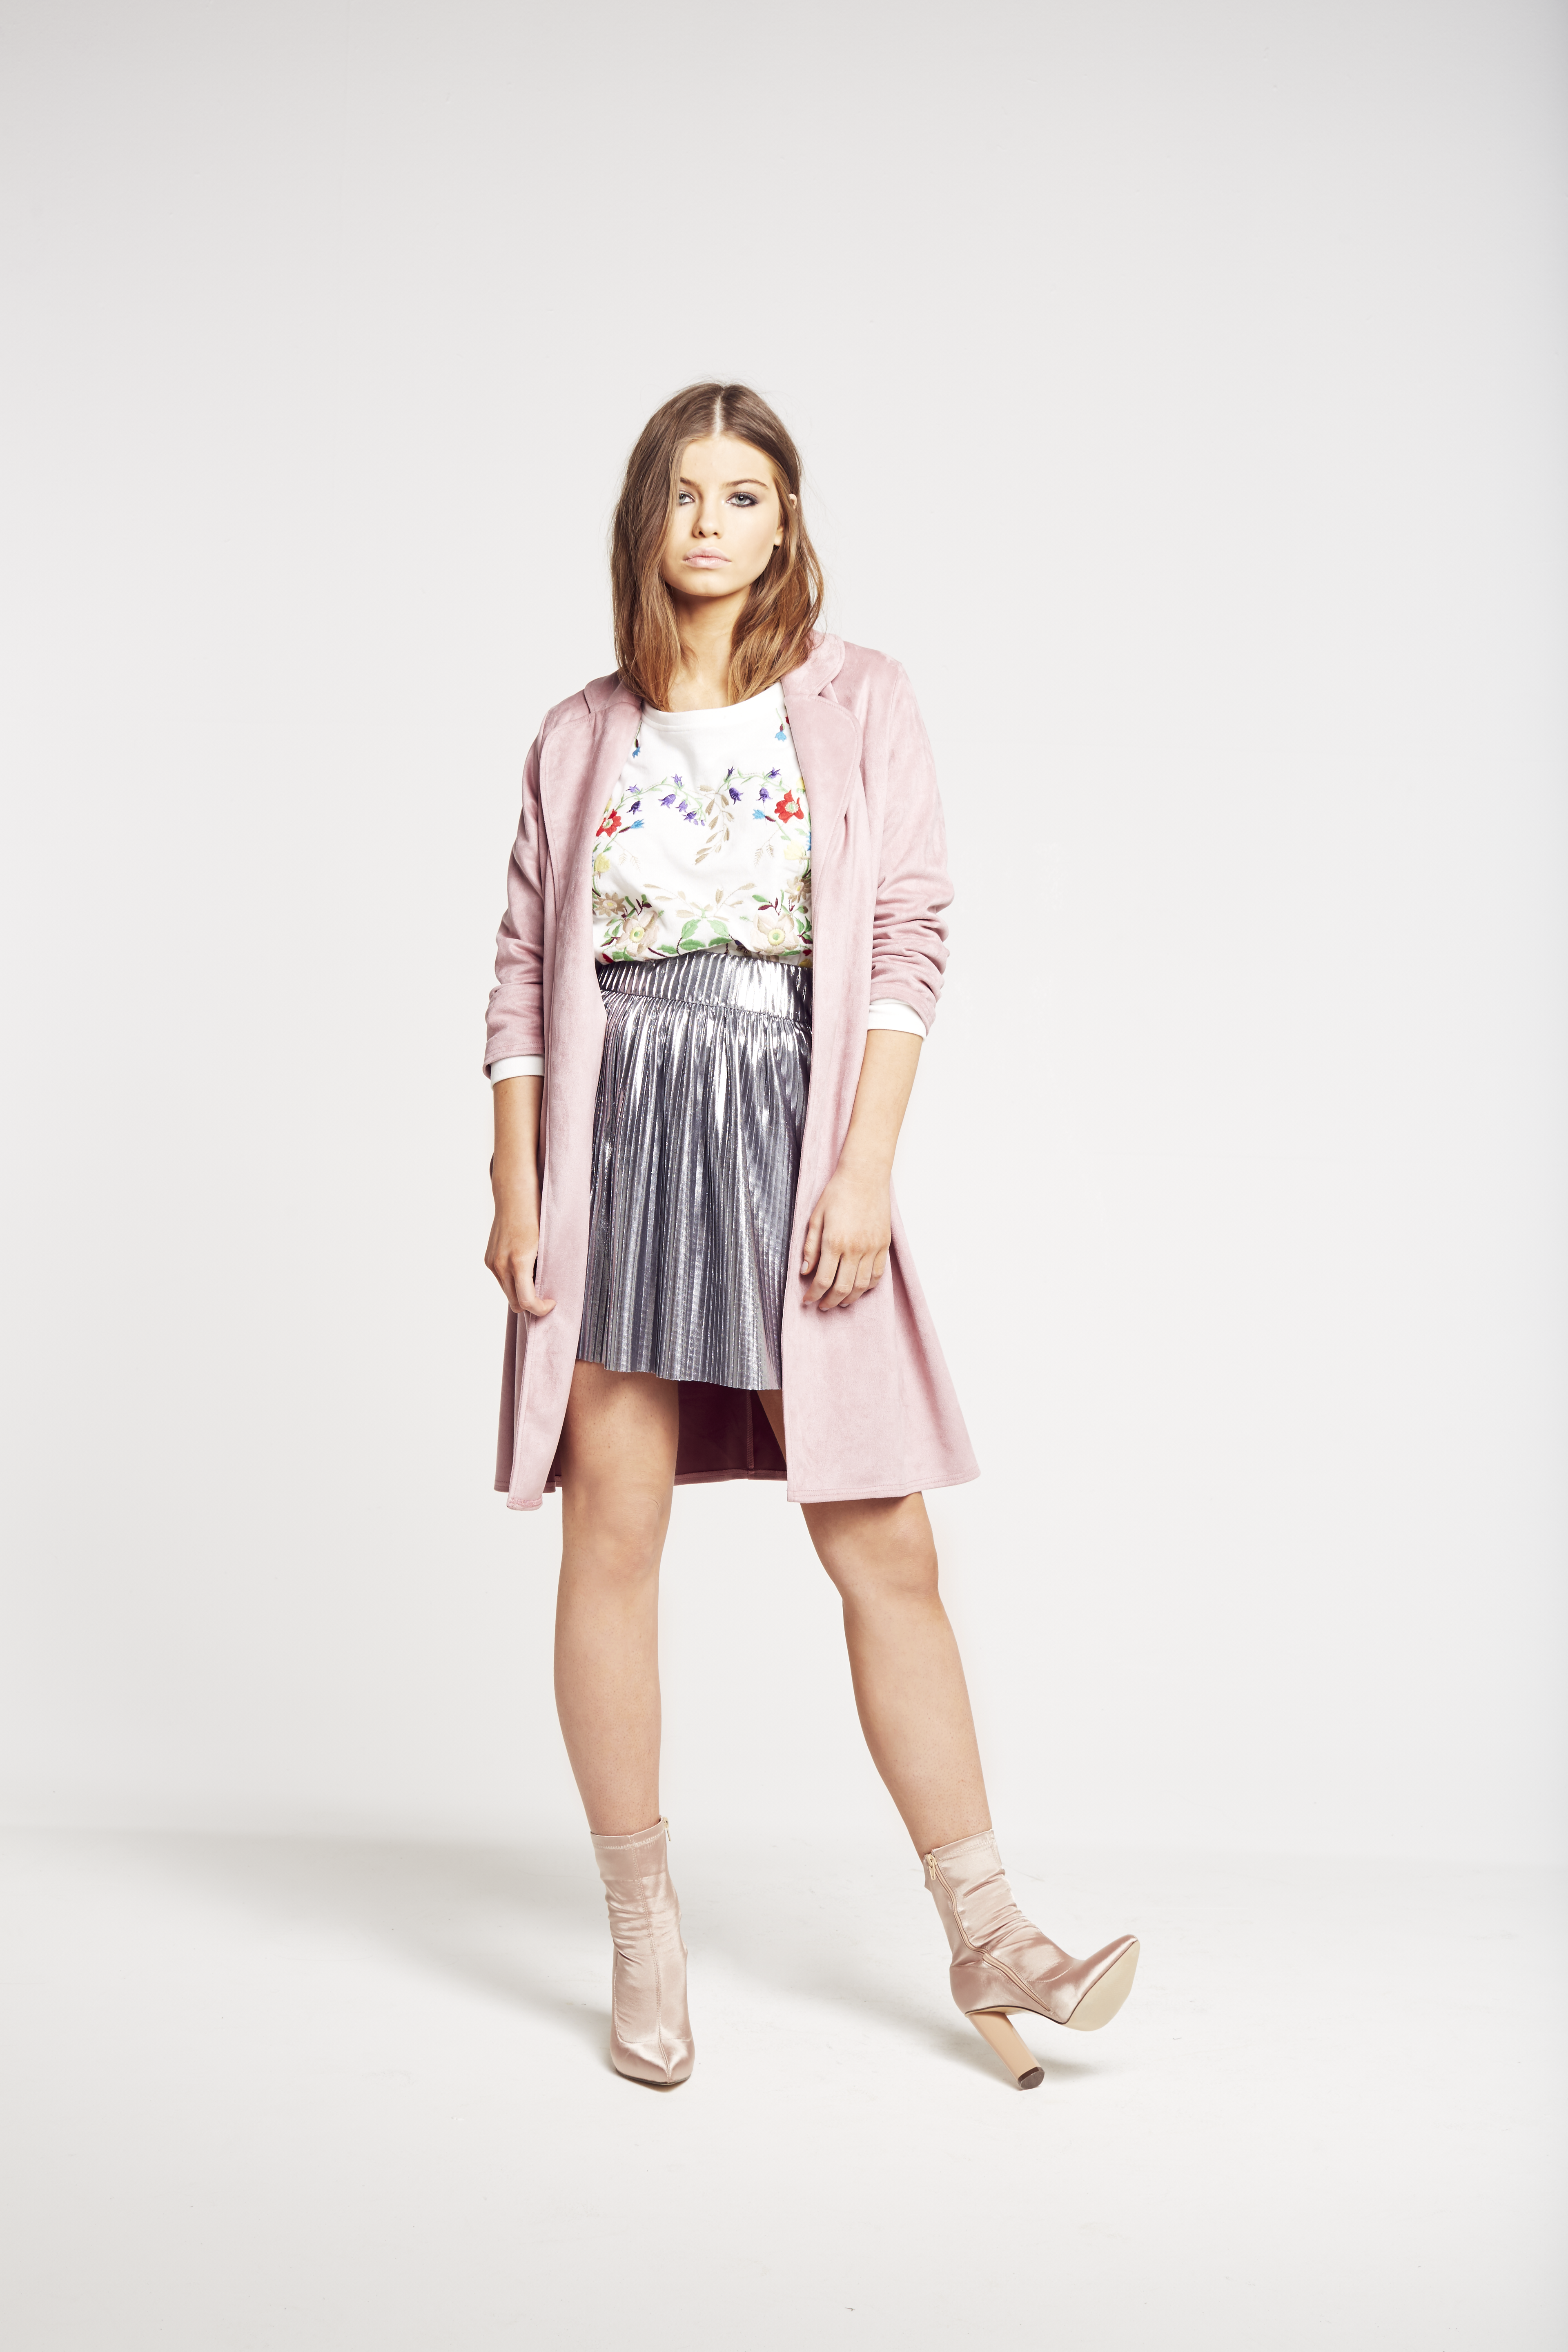 Think Pink: The Colour Pop Shade You Should Be Rockin'